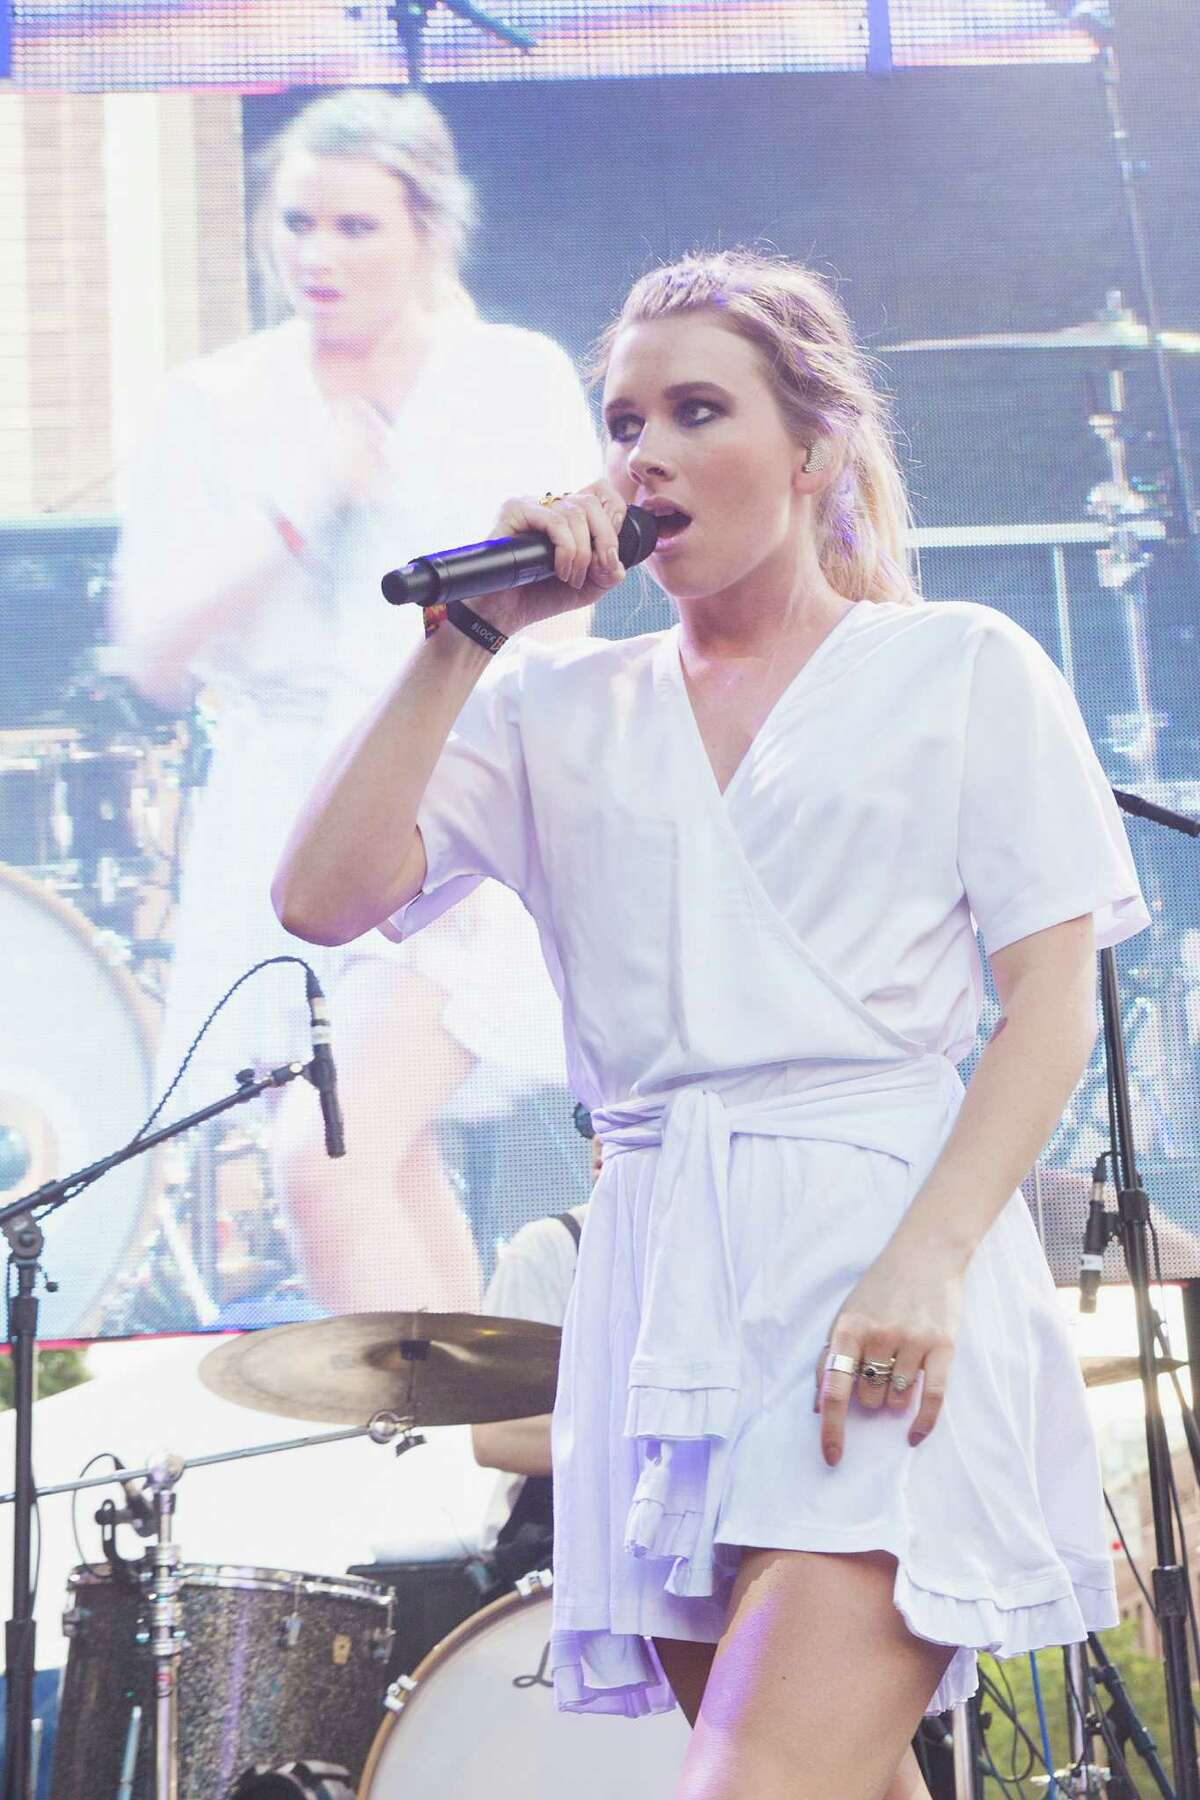 Georgia Nott of Broods performs on stage during the Capitol Hill Block Party on July 24, 2015 in Seattle.